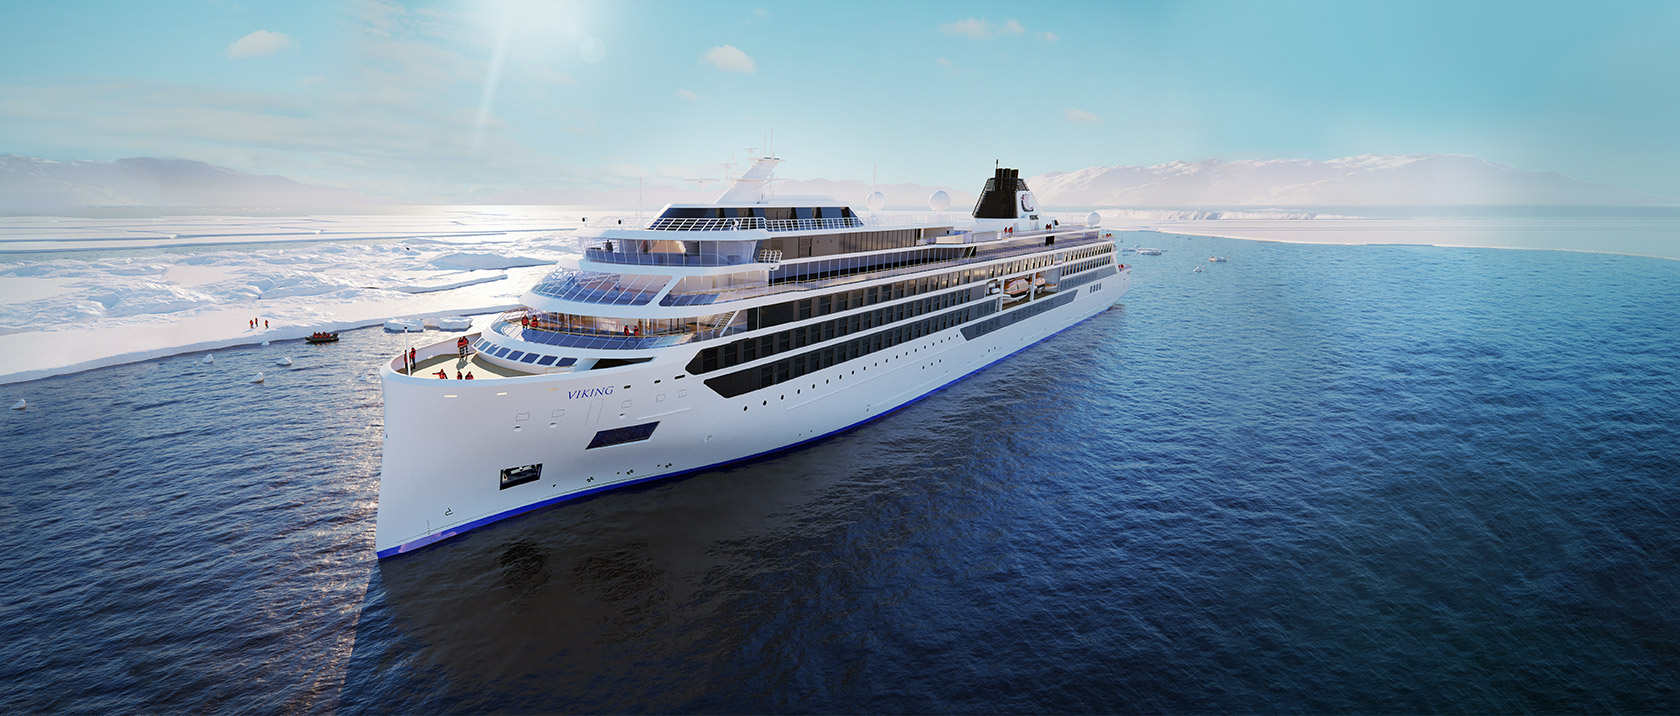 Viking Octanis rendering. Image from Viking Cruises.